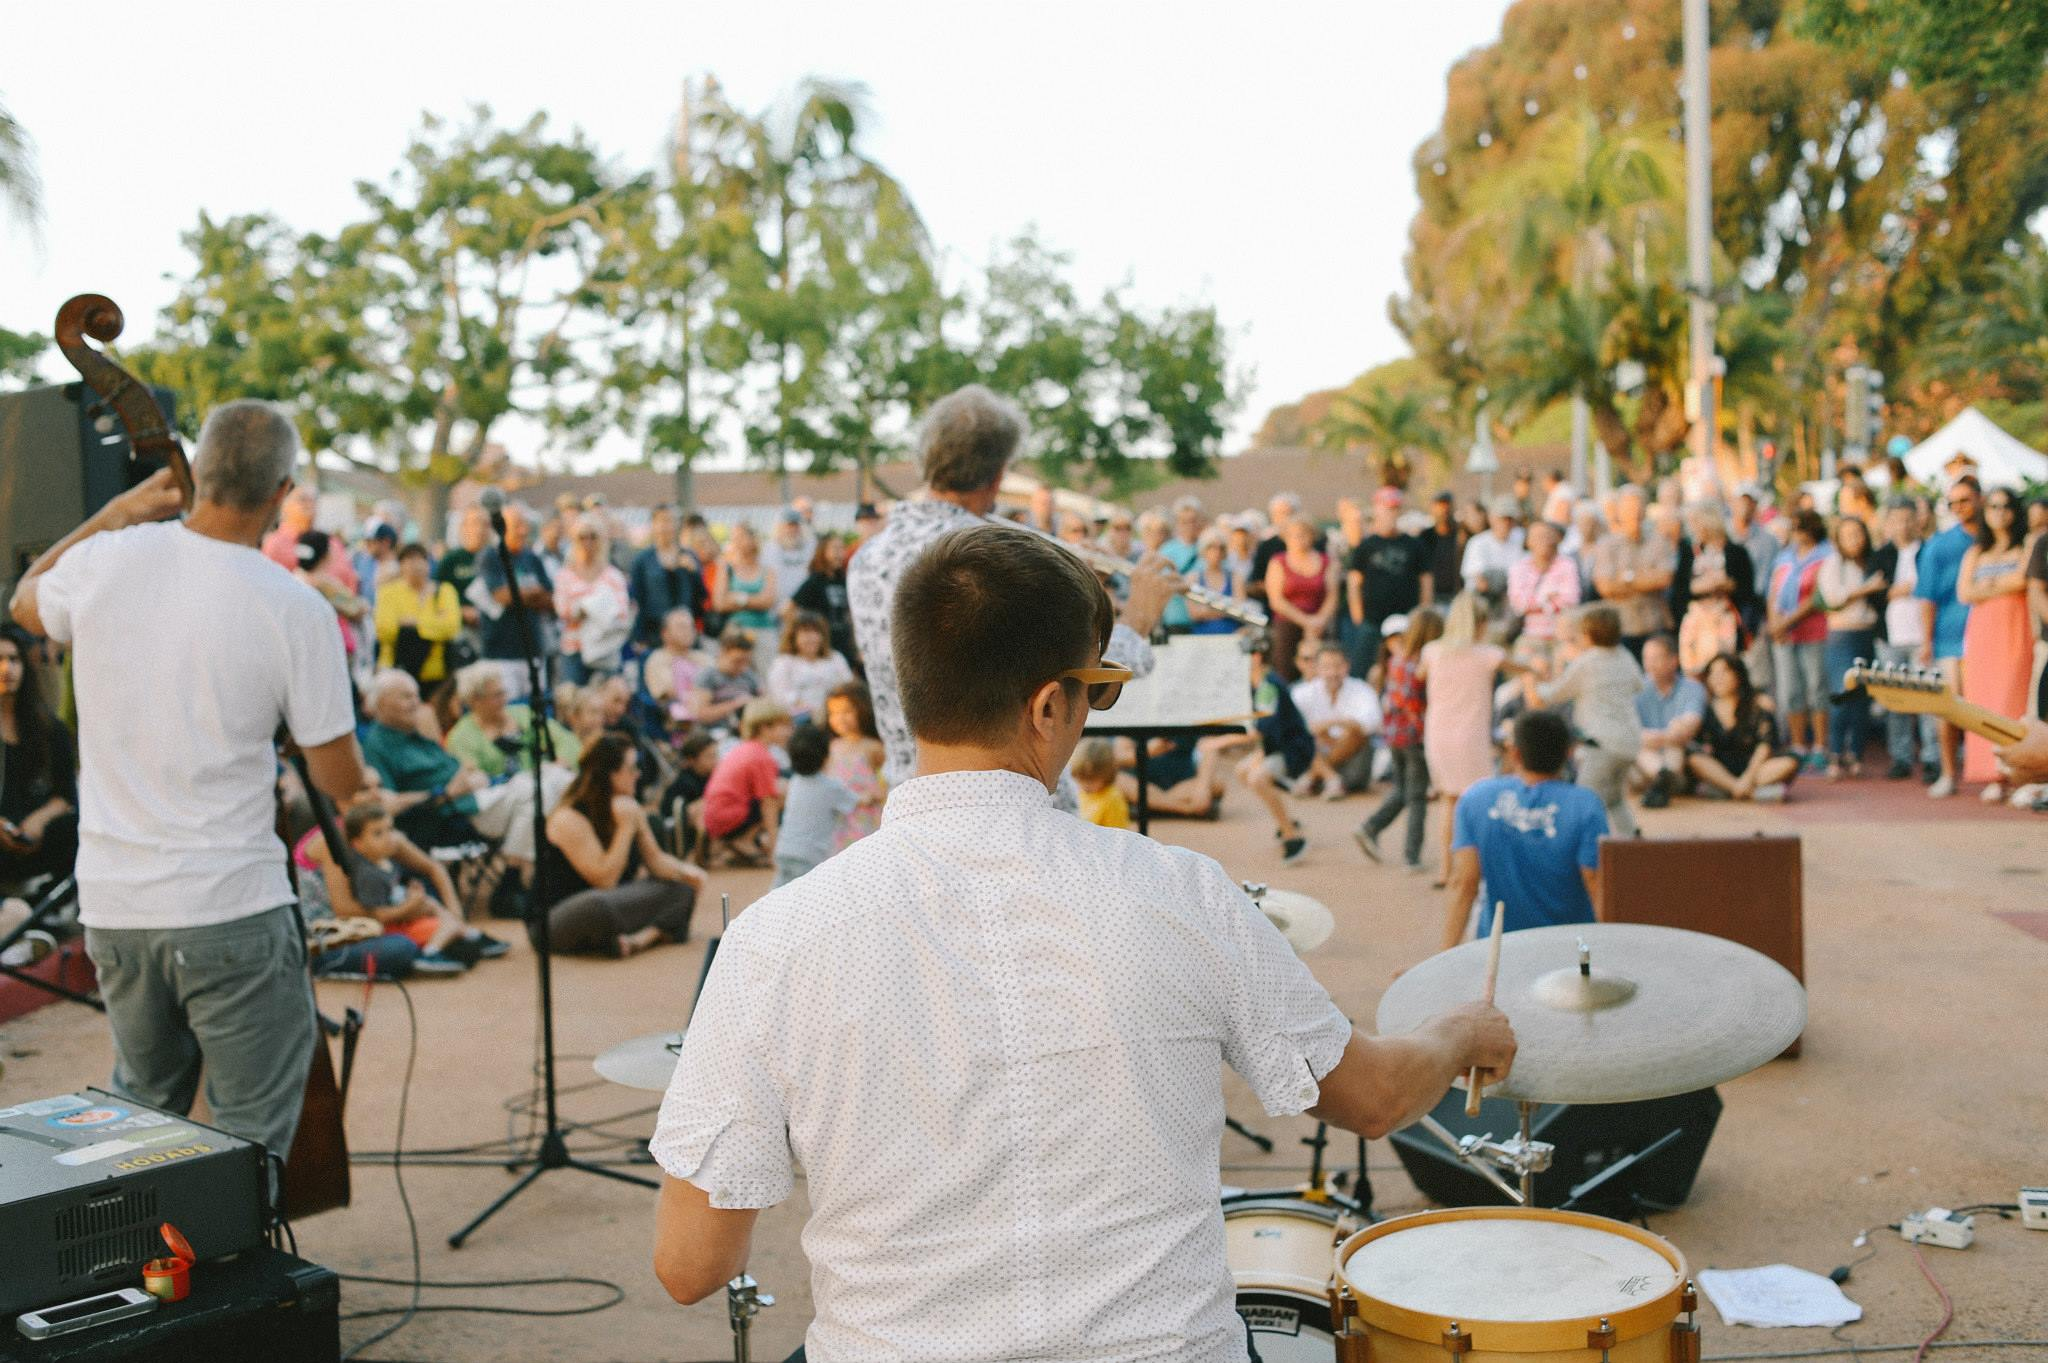 Carlsbad Music Festival - Top Things to Do in San Diego